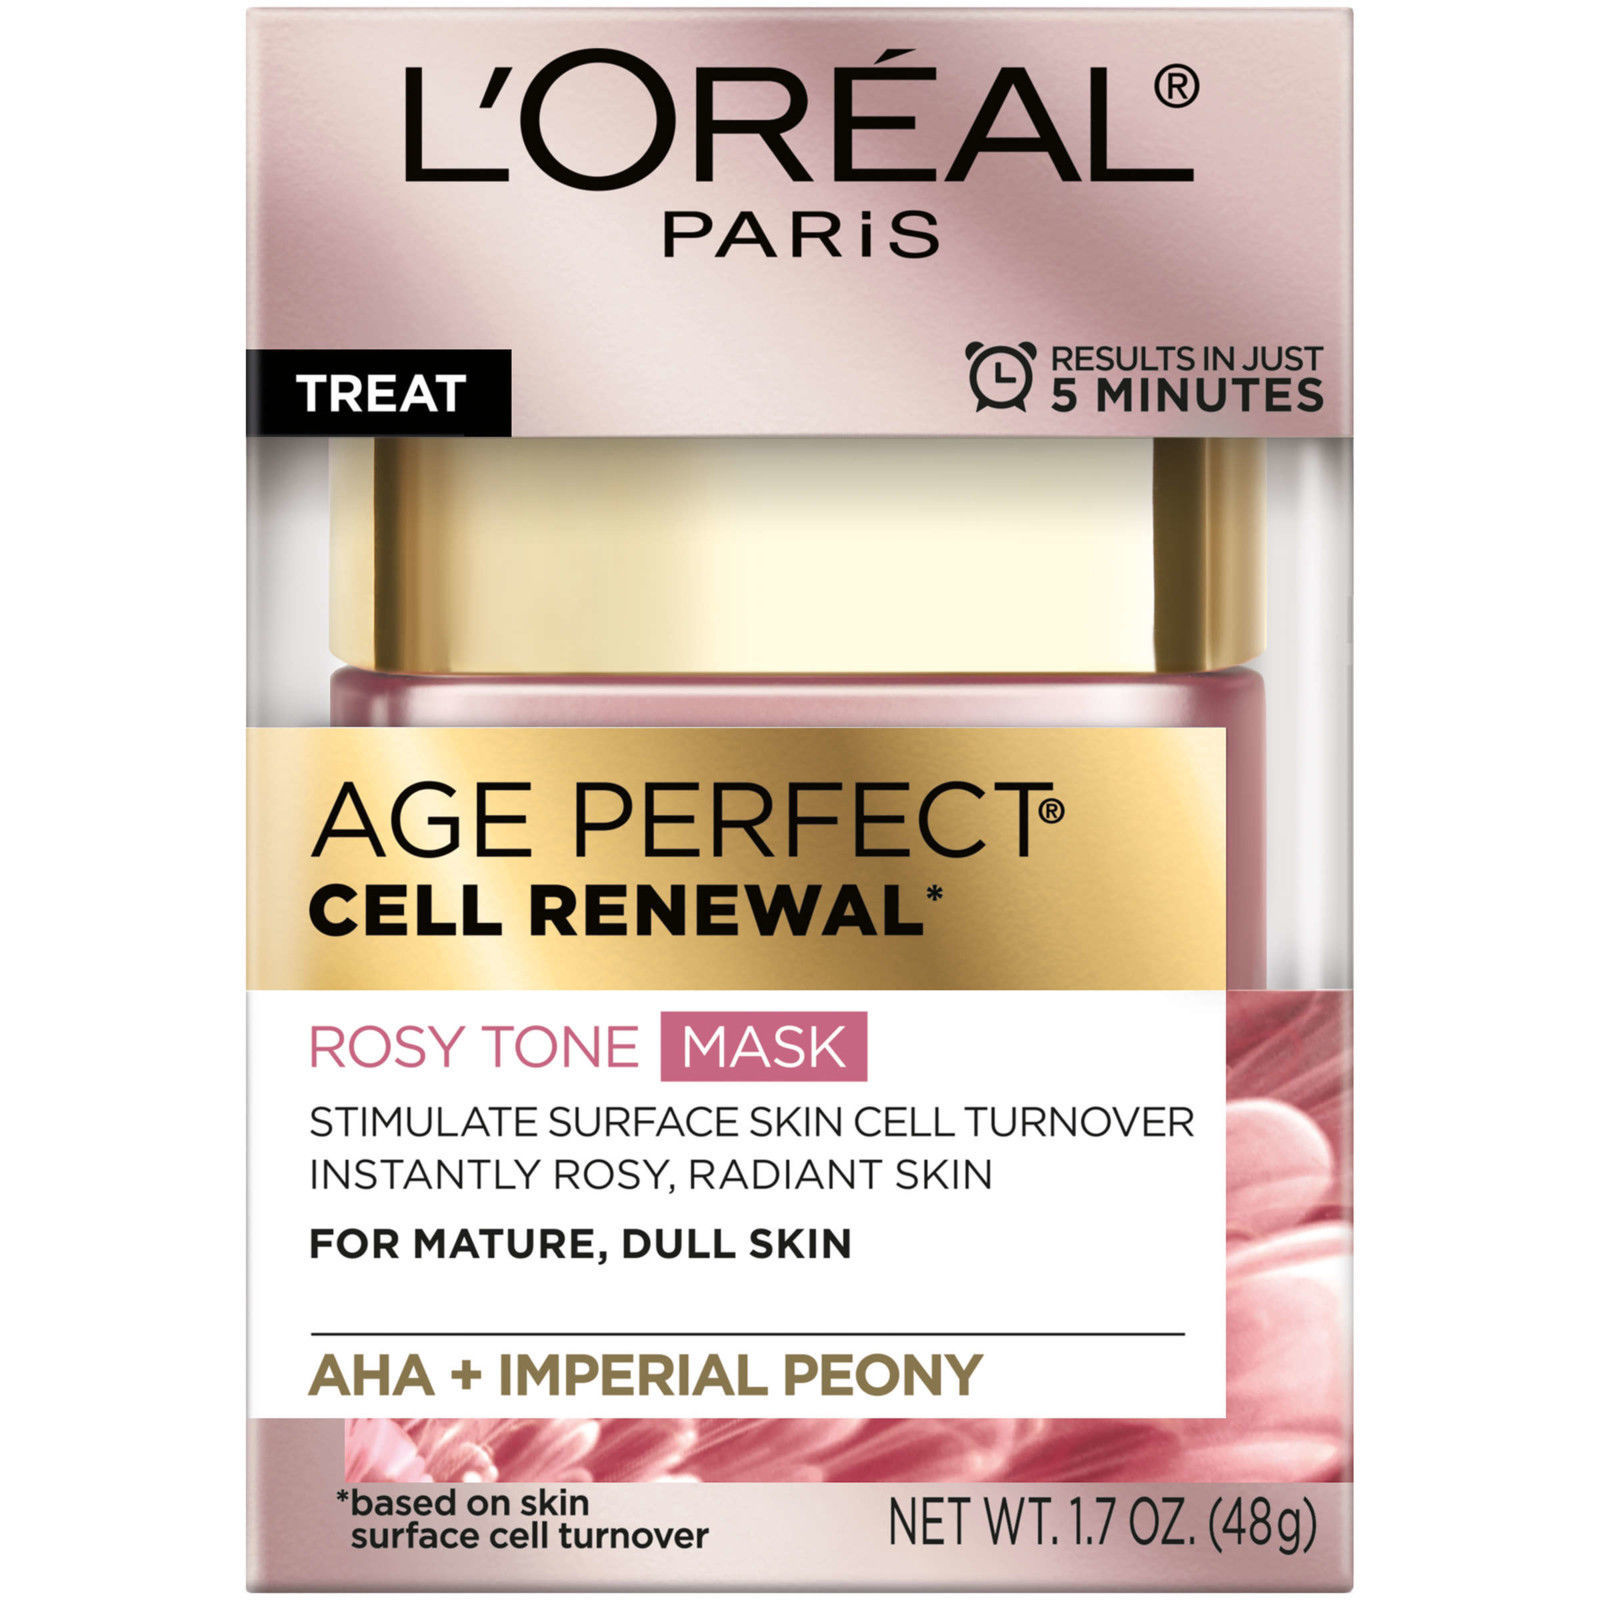 L'oreal Age Perfect Cell Renewal Rosy Tone Mask - 1.7 OZ - $11.29